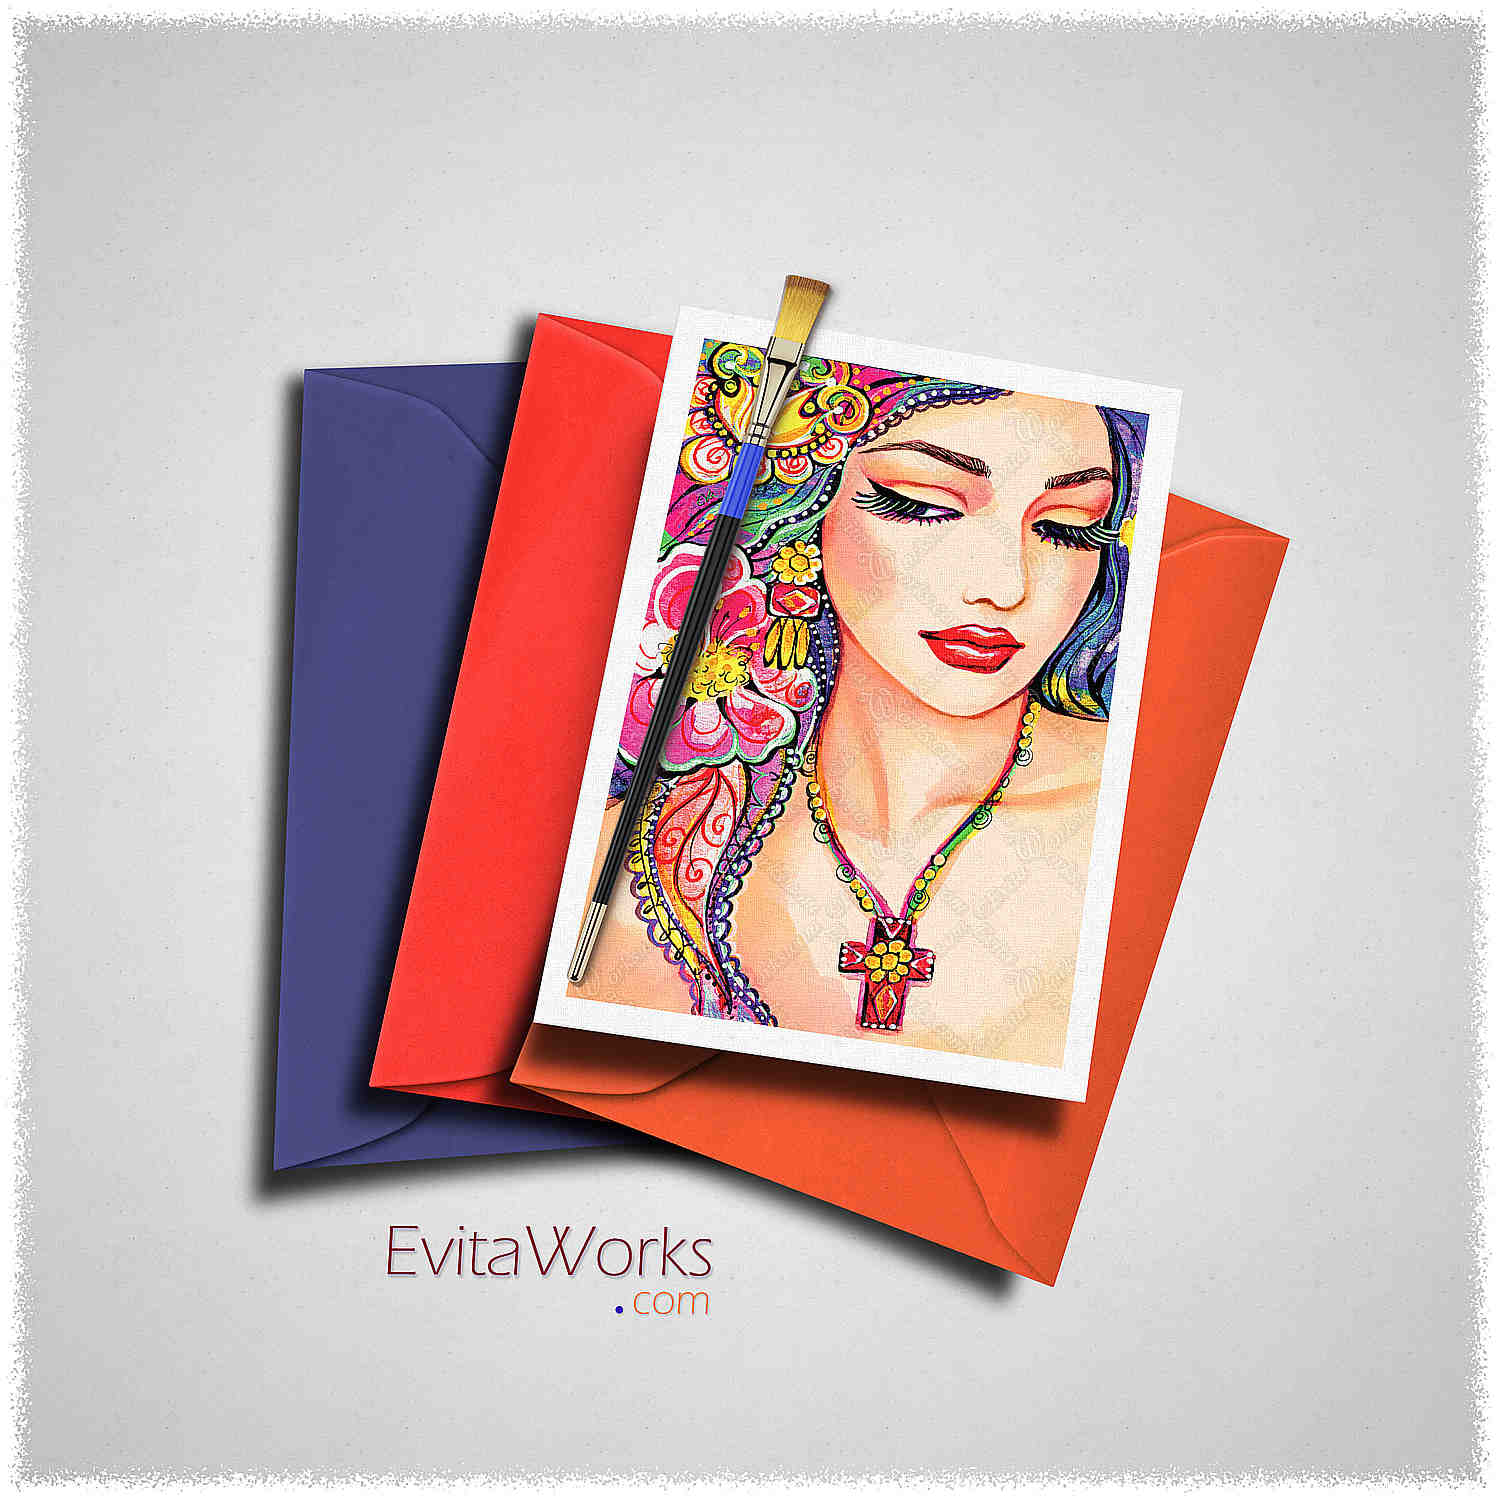 East Woman 21 Card ~ EvitaWorks